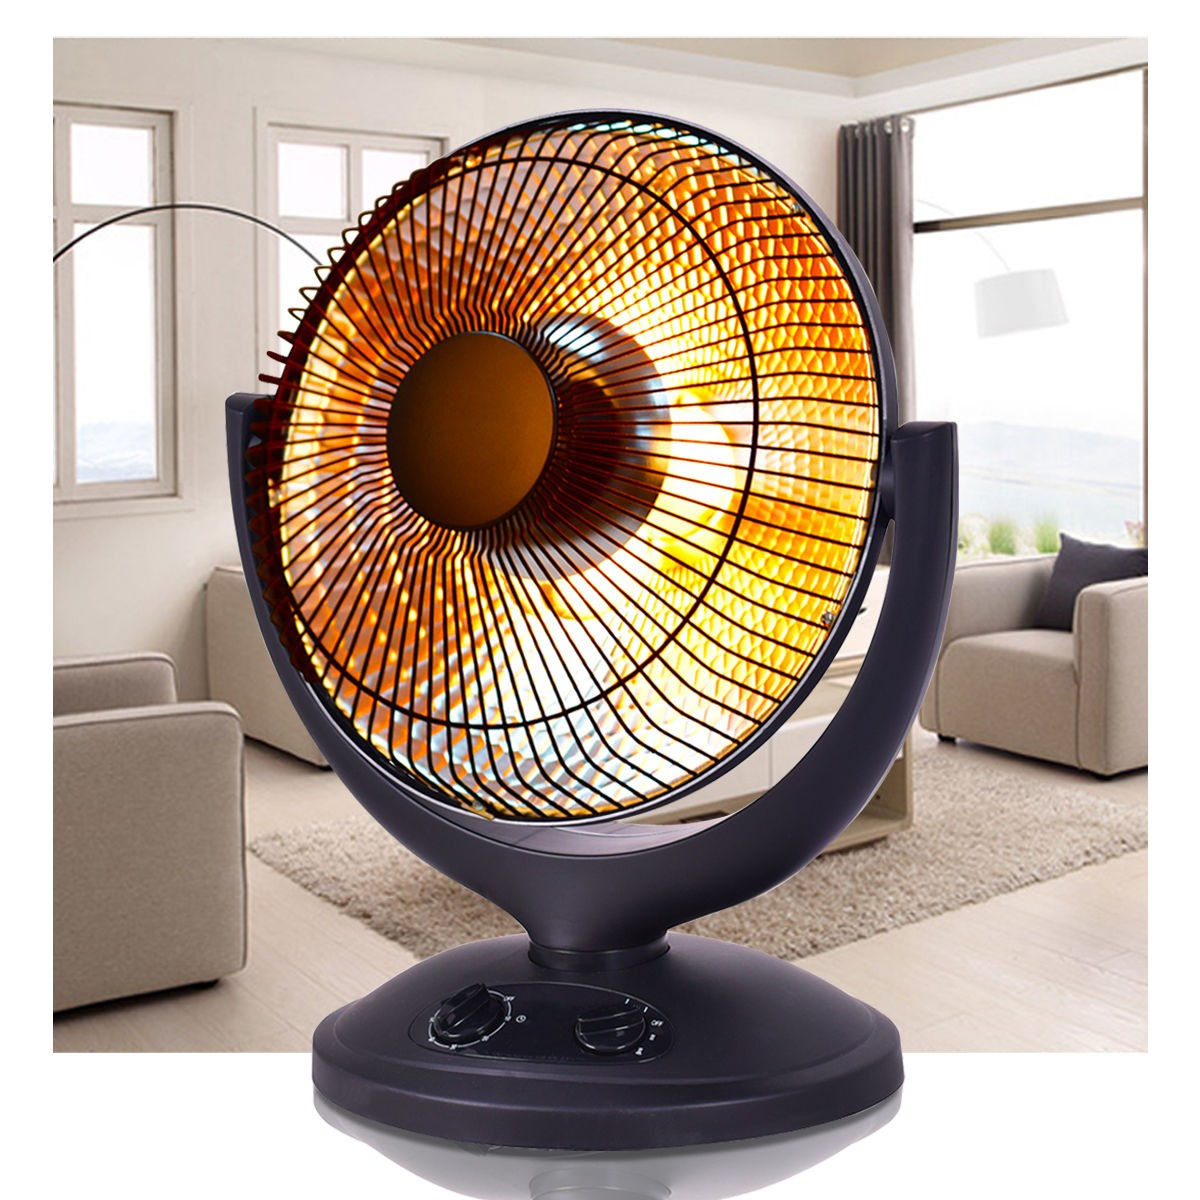 Warm Portable Small Space Heater Electric Room Garage Oscillating Heater - Morealis